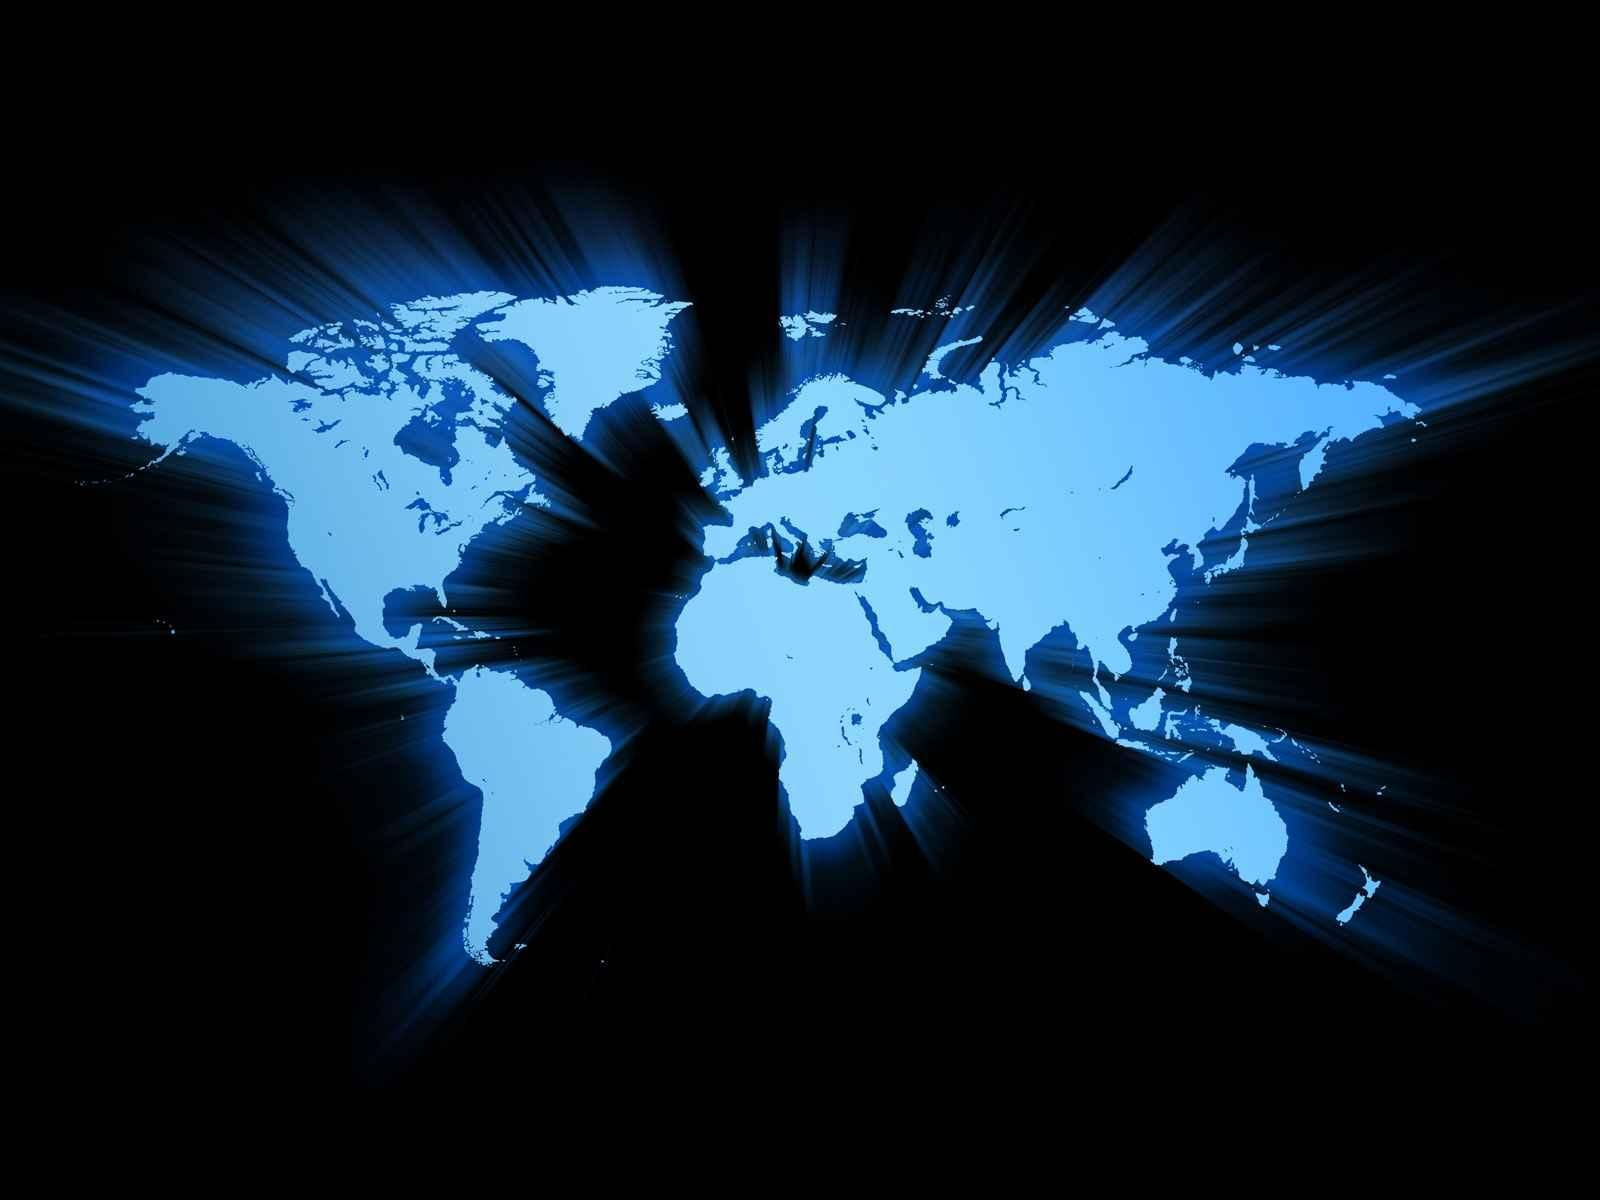 Pin by kiss andrea on e t c pinterest stylish world map background in blue color on a dark background three similar maps set gumiabroncs Gallery